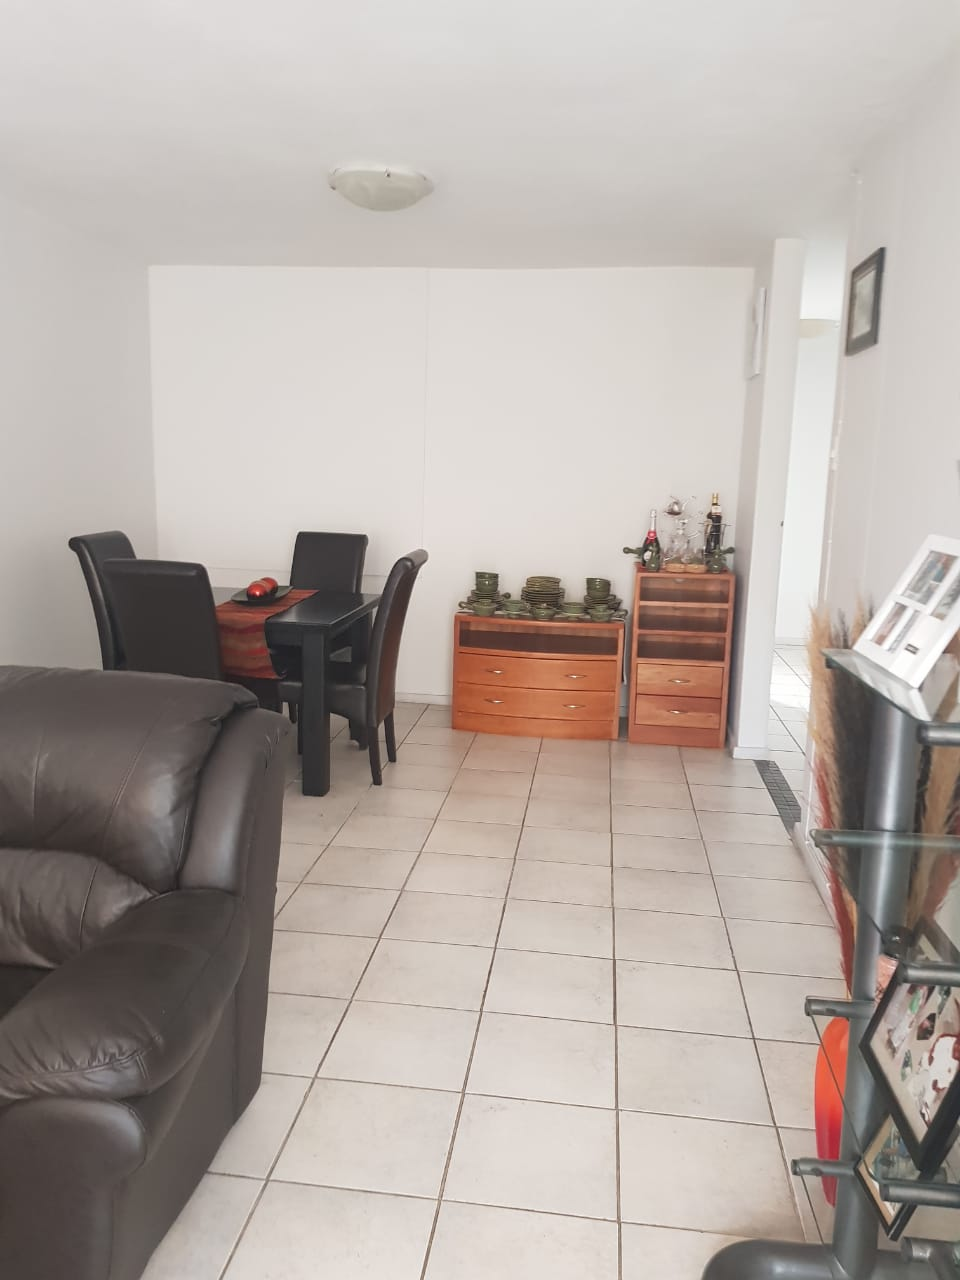 A spacious 3 bedrooms flat it is available@969,9th Avenue Wonderboom South